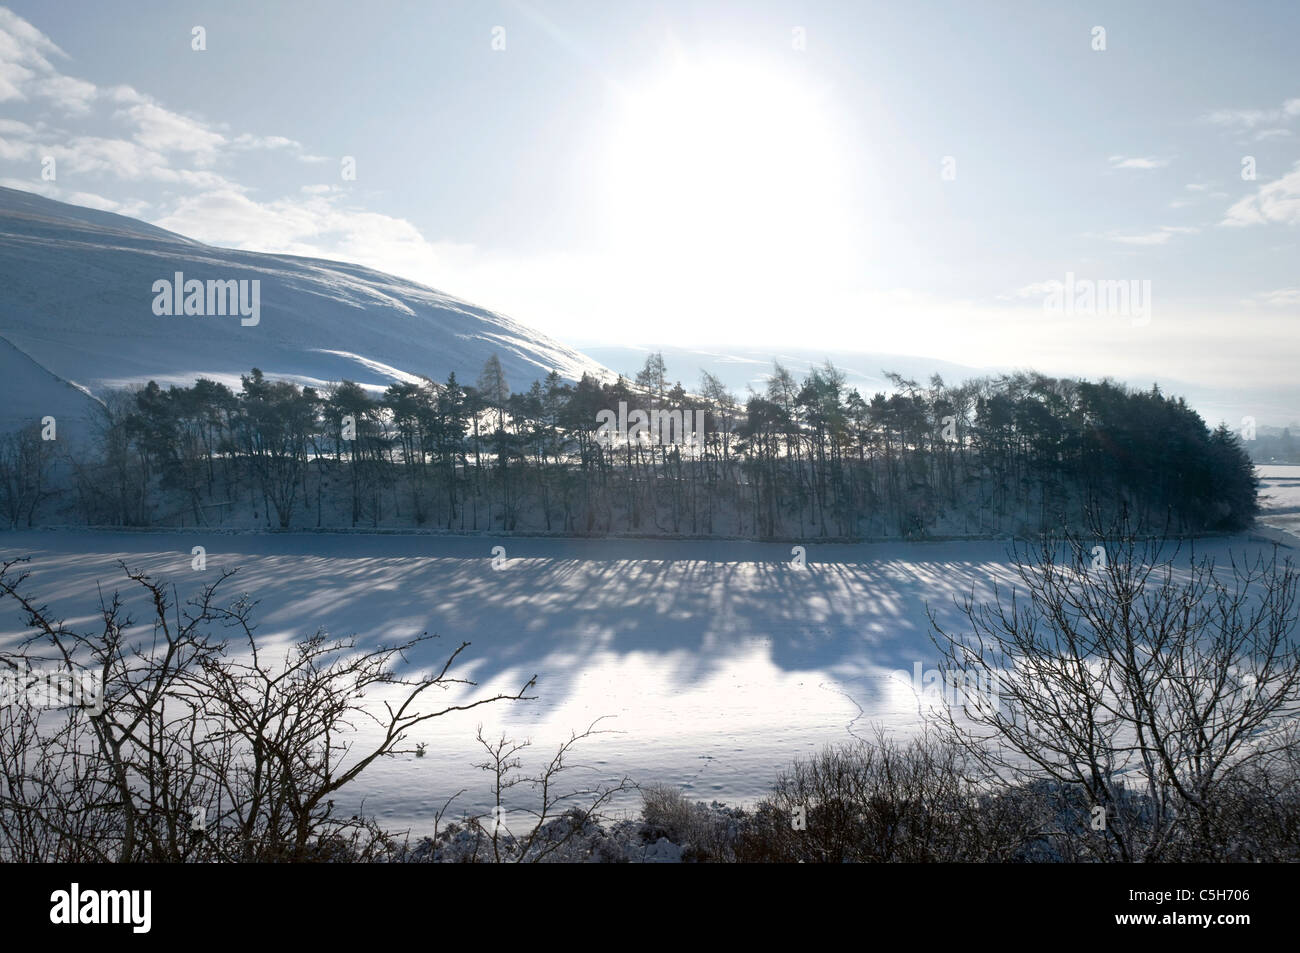 Winter copse of plantation Scots pines by Yarrow Water - Scottish Borders - Stock Image